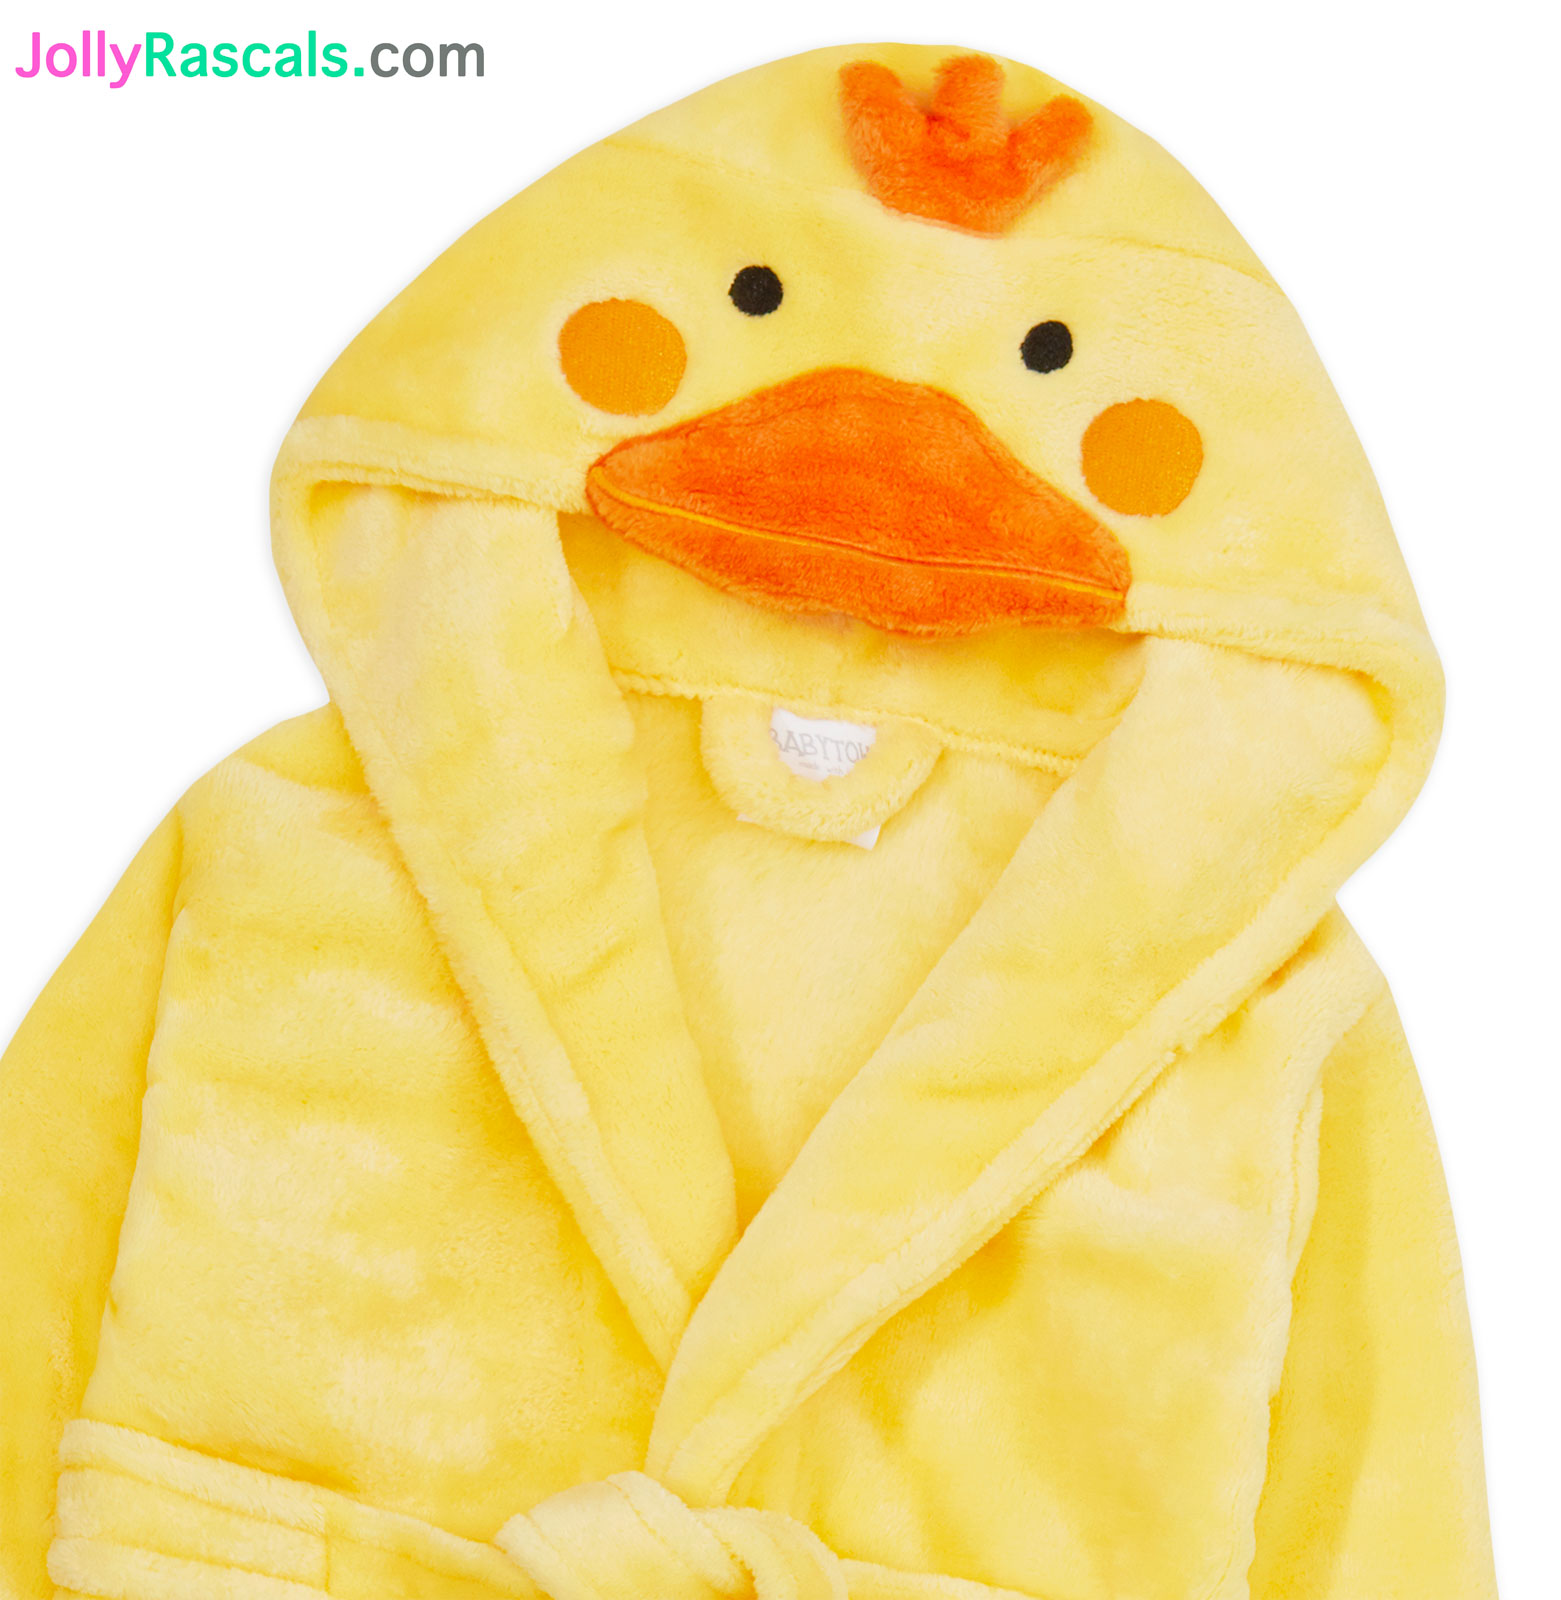 JollyRascals Girls Boys Baby Dressing Gown New Novelty Kids Unisex Bath Robe Duck or Elephant Ages 6-24 Months